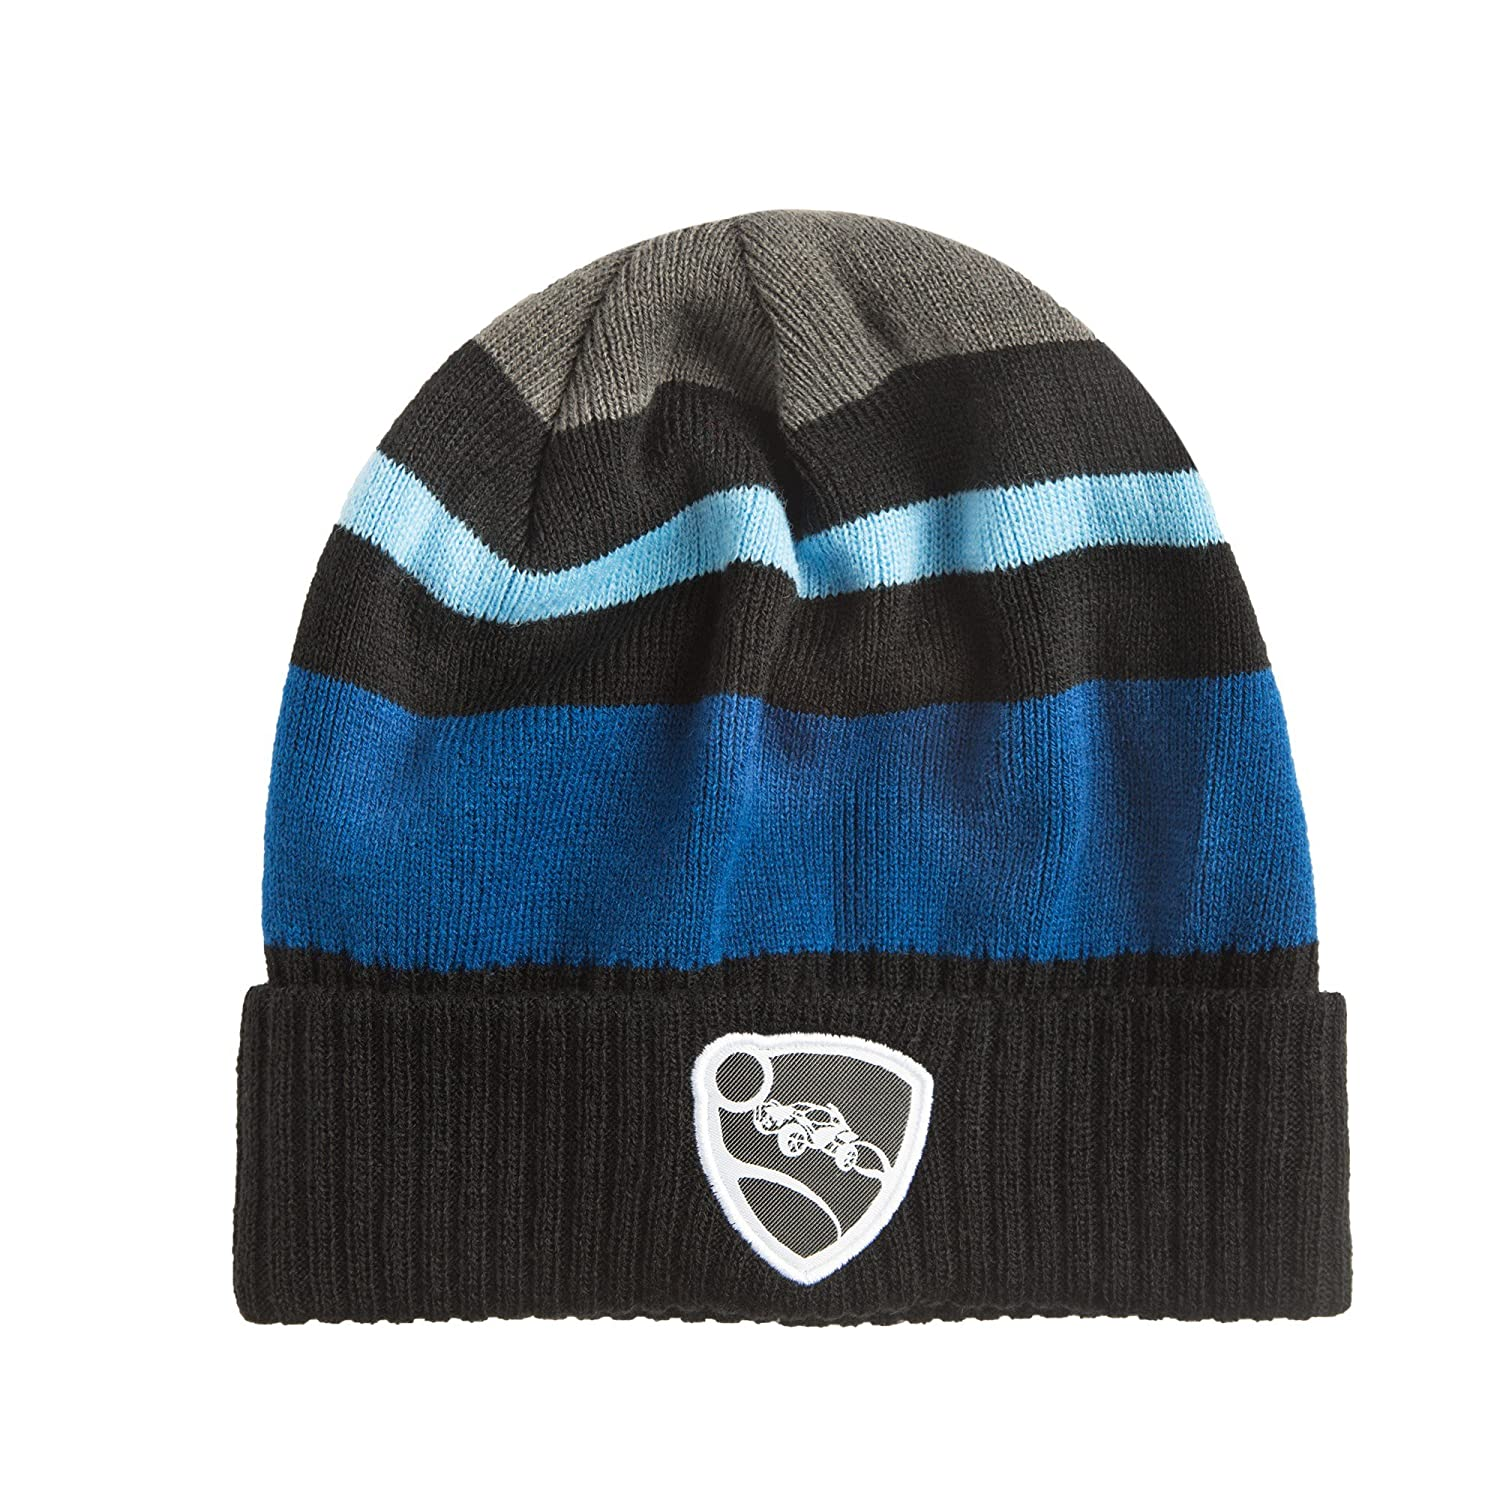 JINX Rocket League Synergy Knit Beanie (Black/Blue, One Size) for Video Game Fans